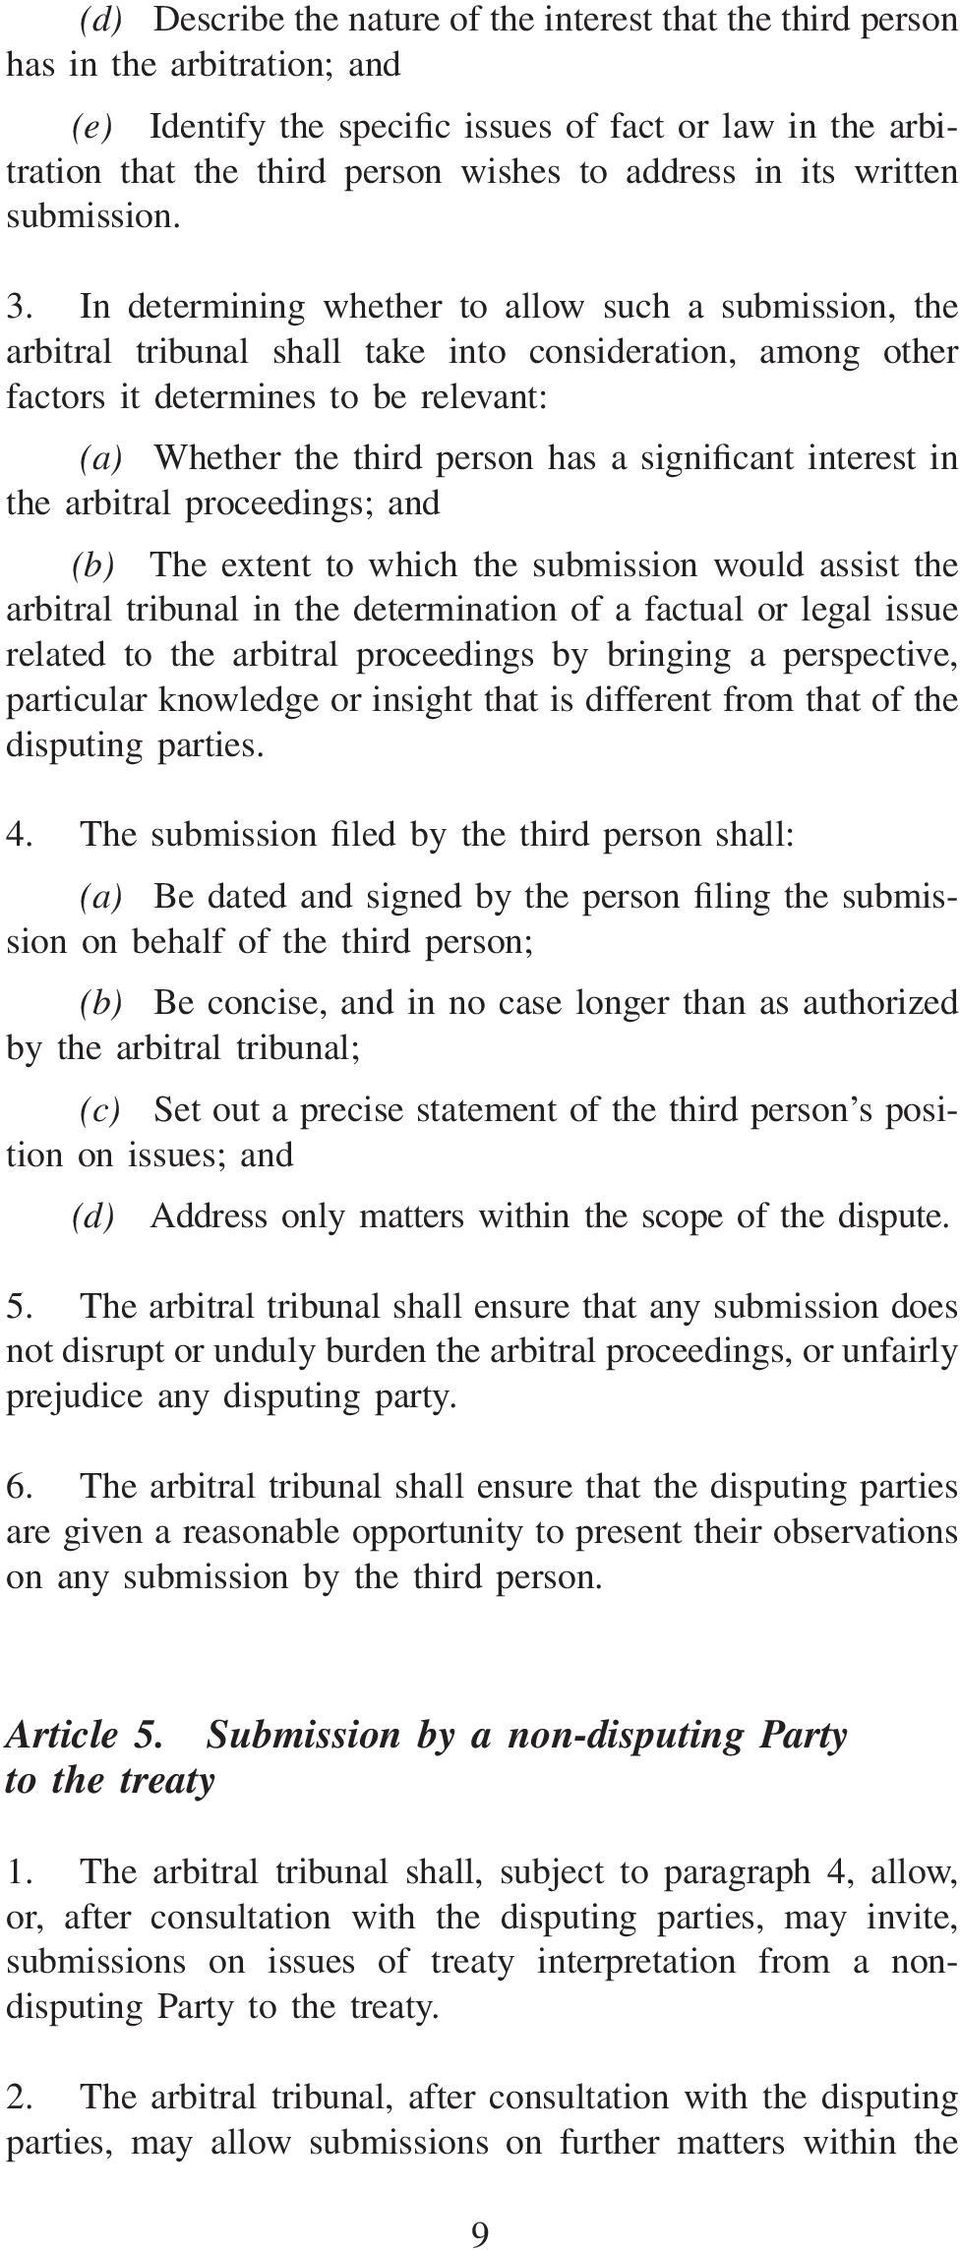 In determining whether to allow such a submission, the arbitral tribunal shall take into consideration, among other factors it determines to be relevant: (a) Whether the third person has a